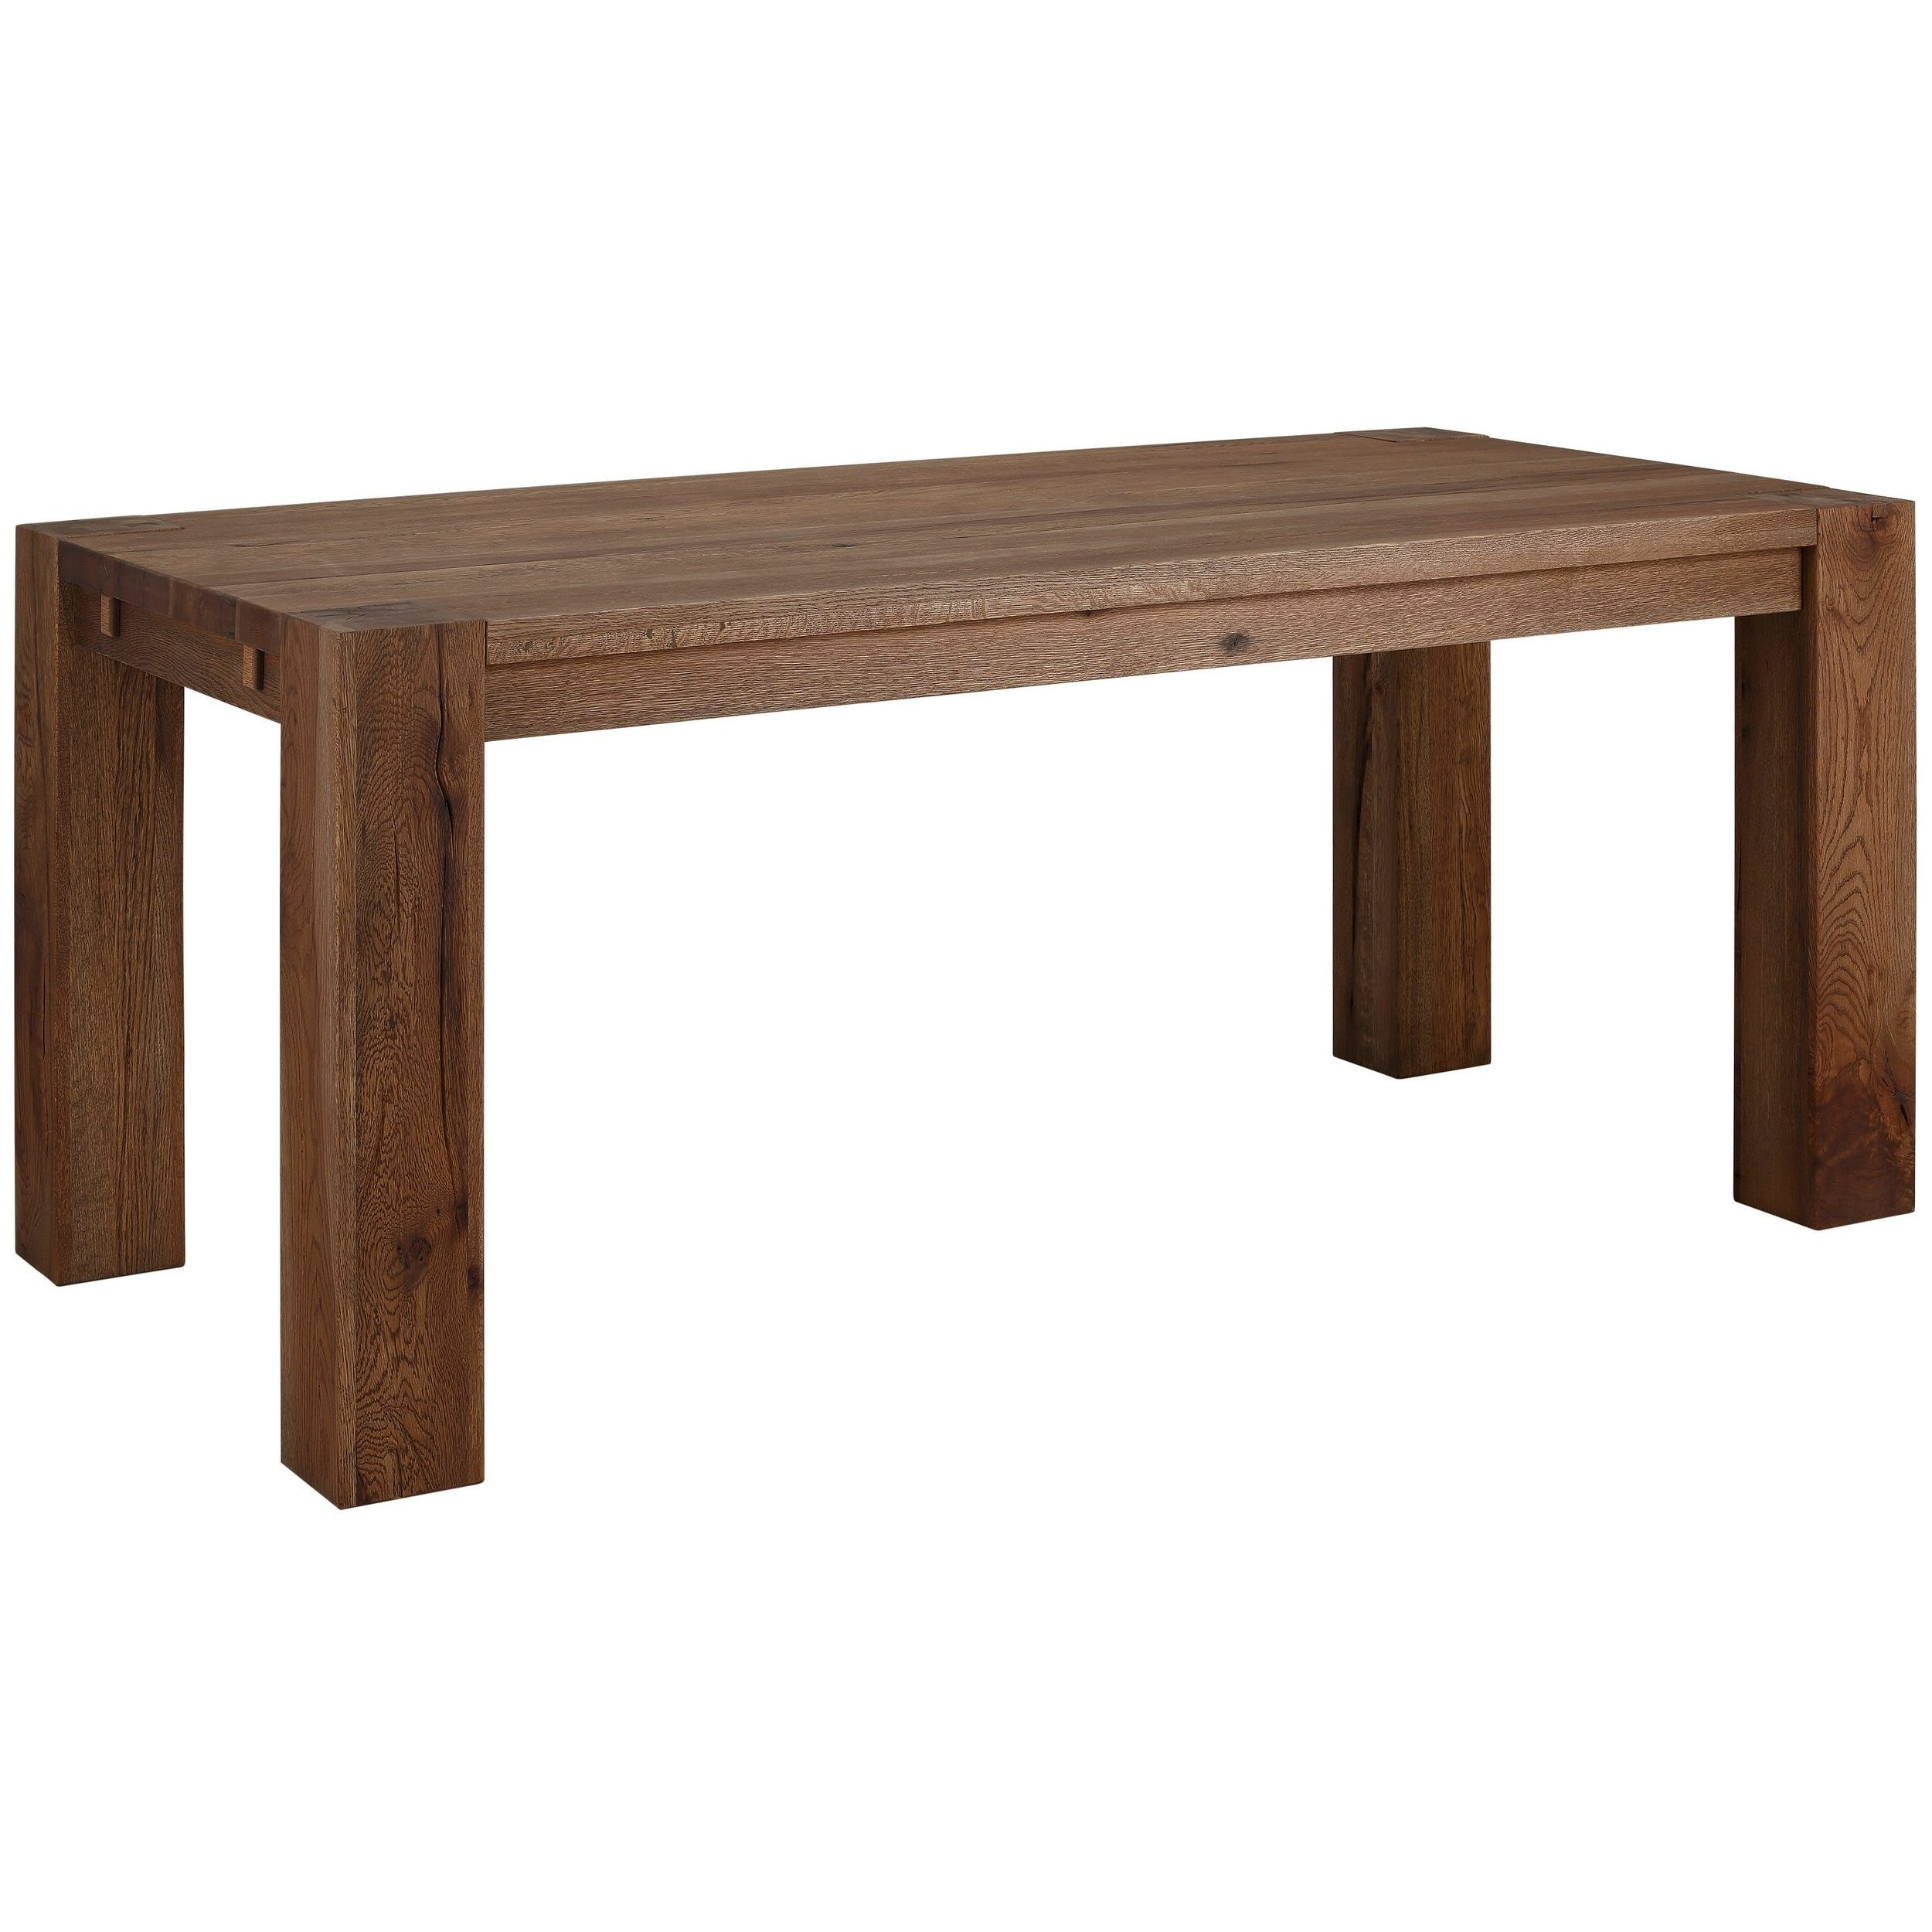 Shop Matrix 87 Inch Wild Oak Dining Table, Smoked – On Sale – Free Within 2017 87 Inch Dining Tables (View 11 of 20)